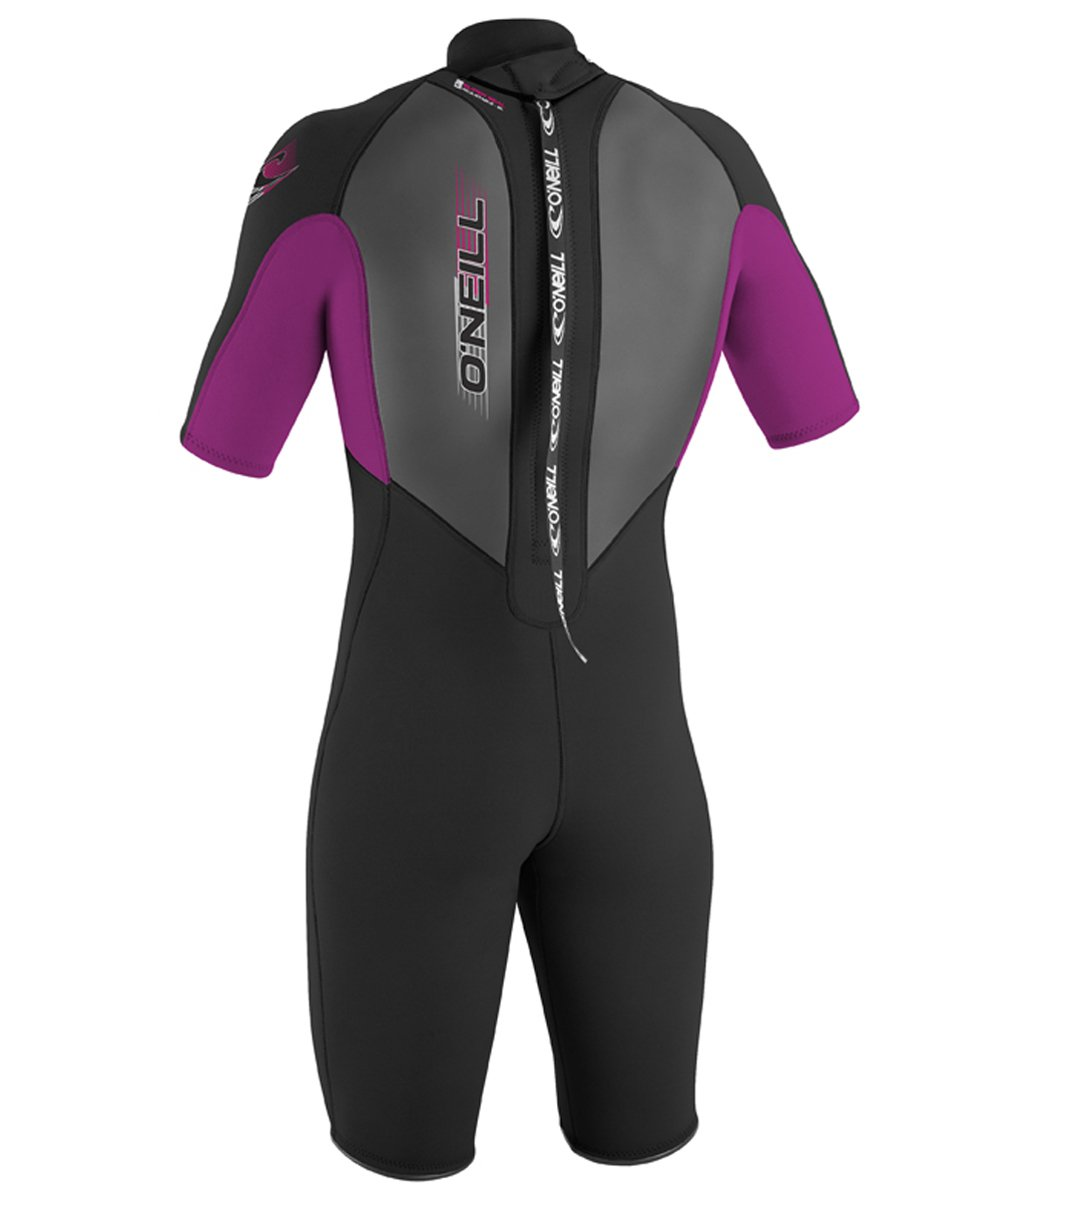 O'Neill Youth Reactor 2mm Back Zip Spring Wetsuit, Black/Pink/Black, 6 by O'Neill Wetsuits (Image #2)